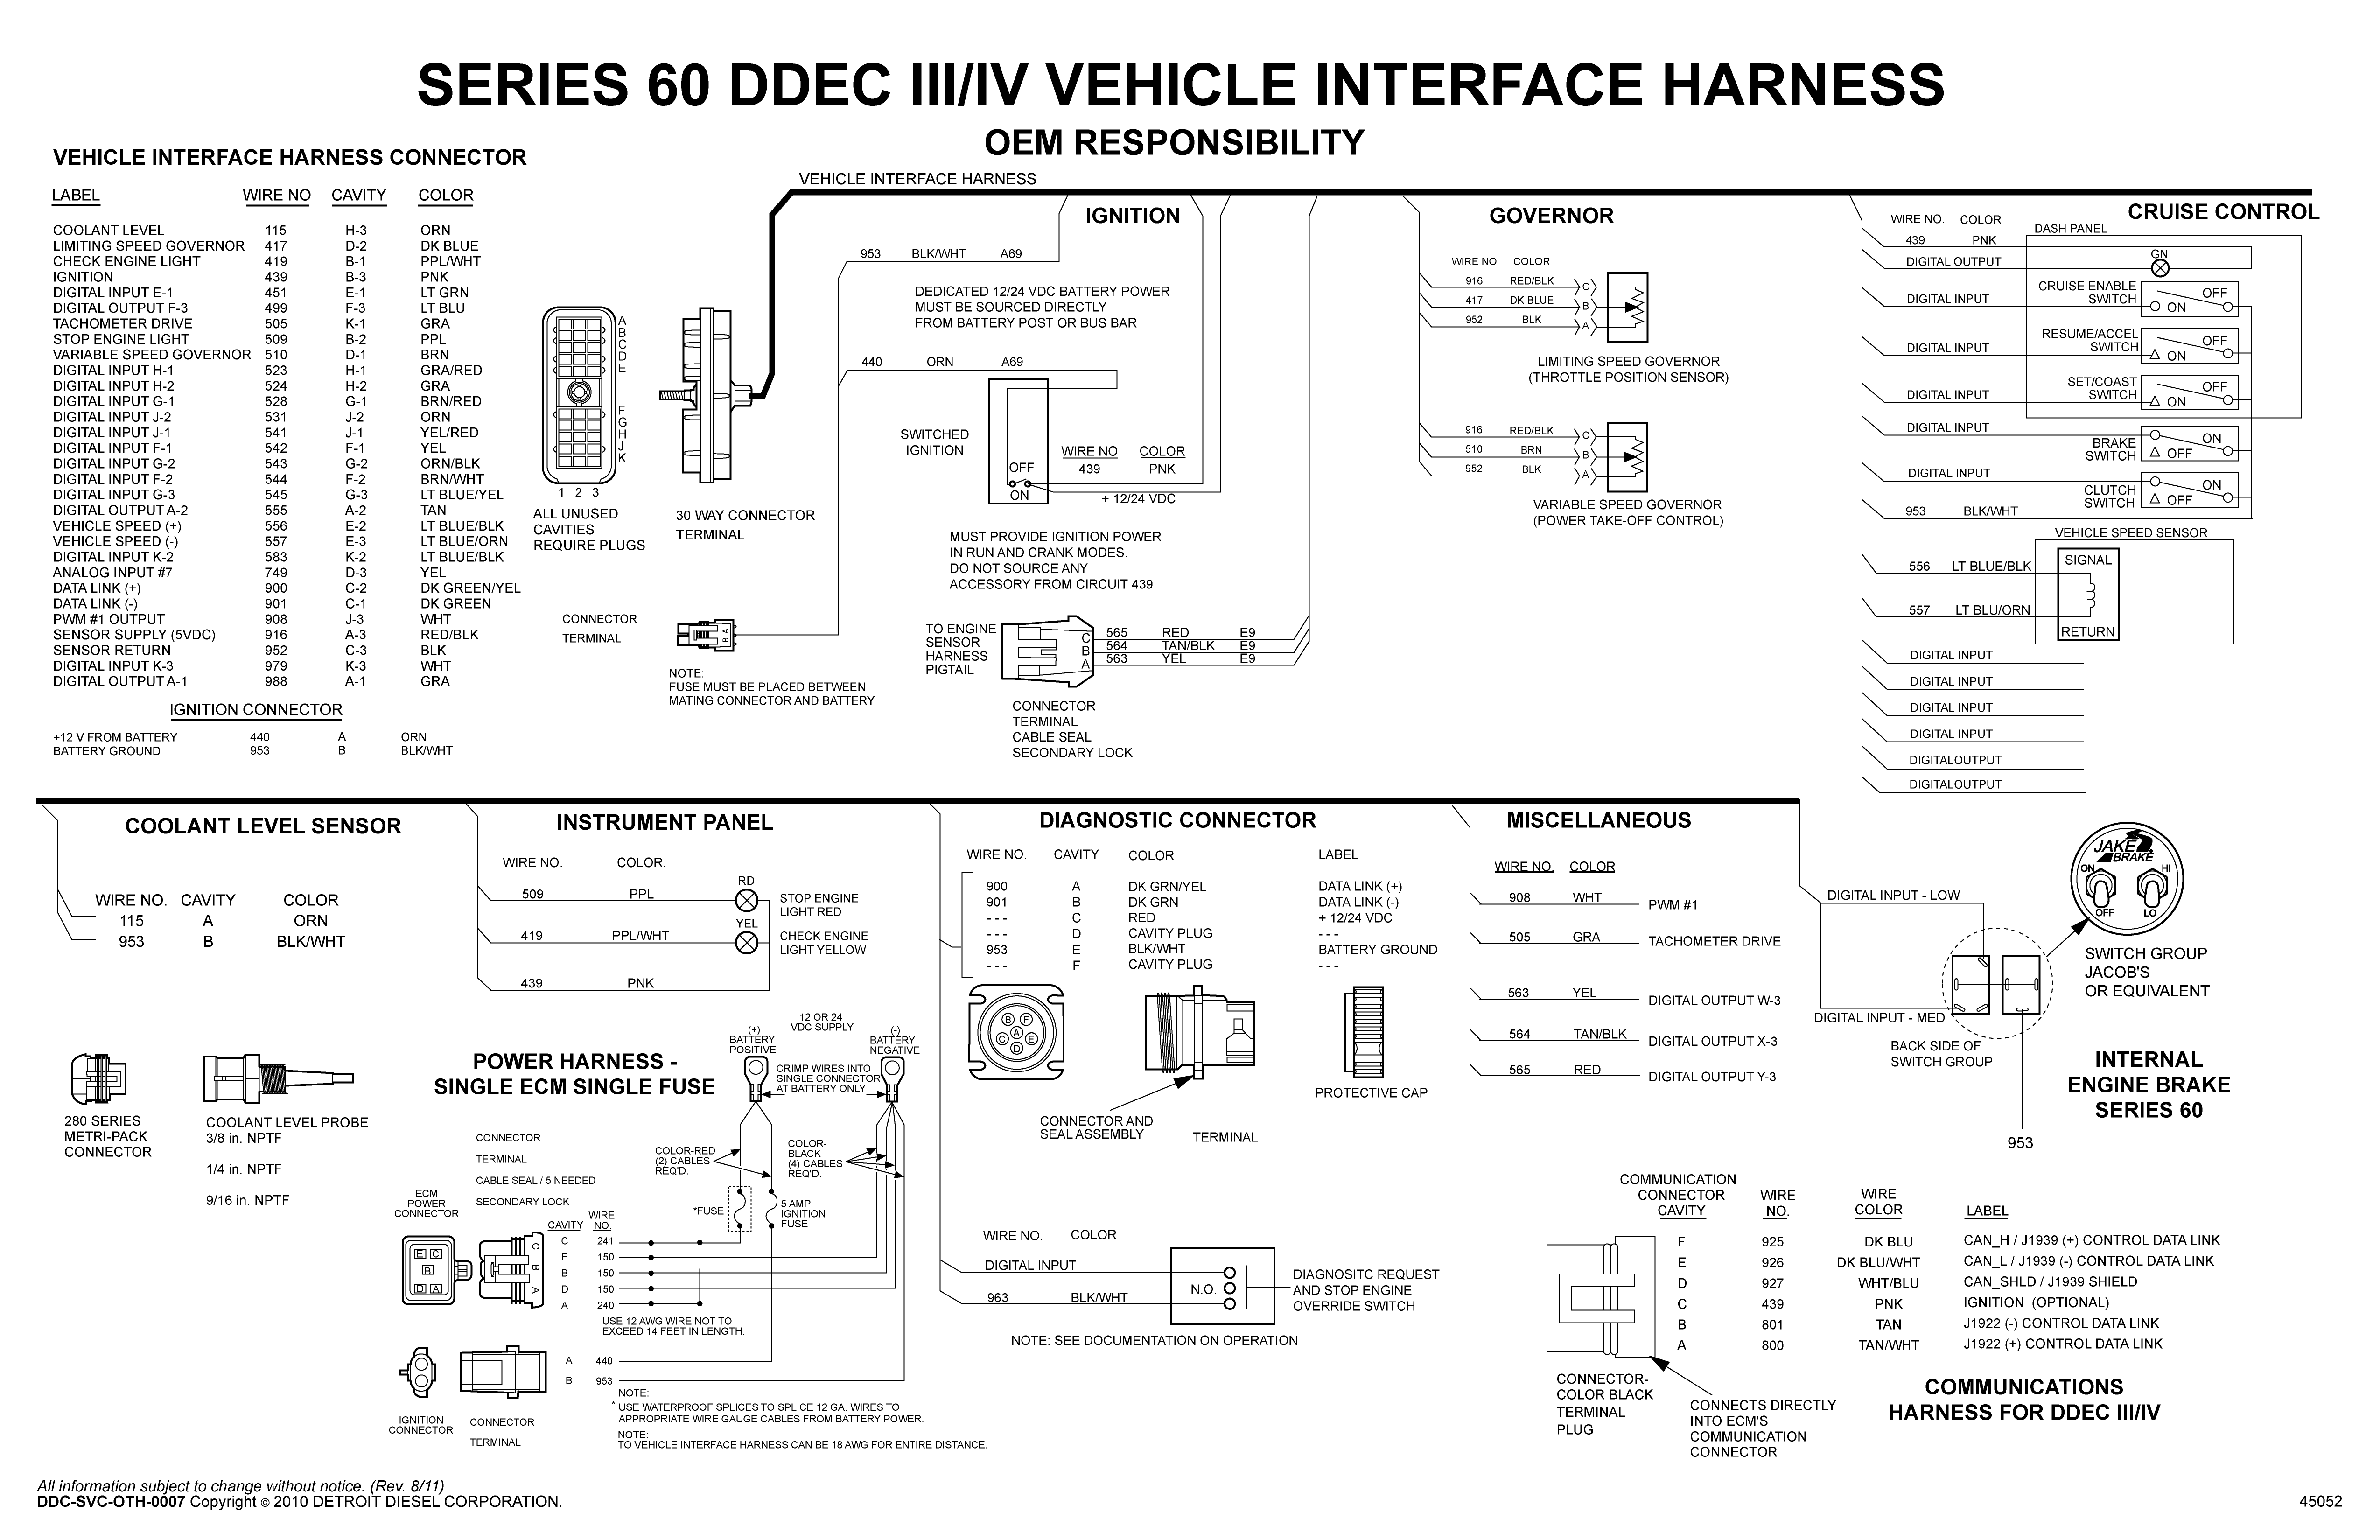 ddec 5 wiring diagram get free image about wiring diagram DDEC V ECM Vehicle Interface Harness N14 ECM Wiring Diagram